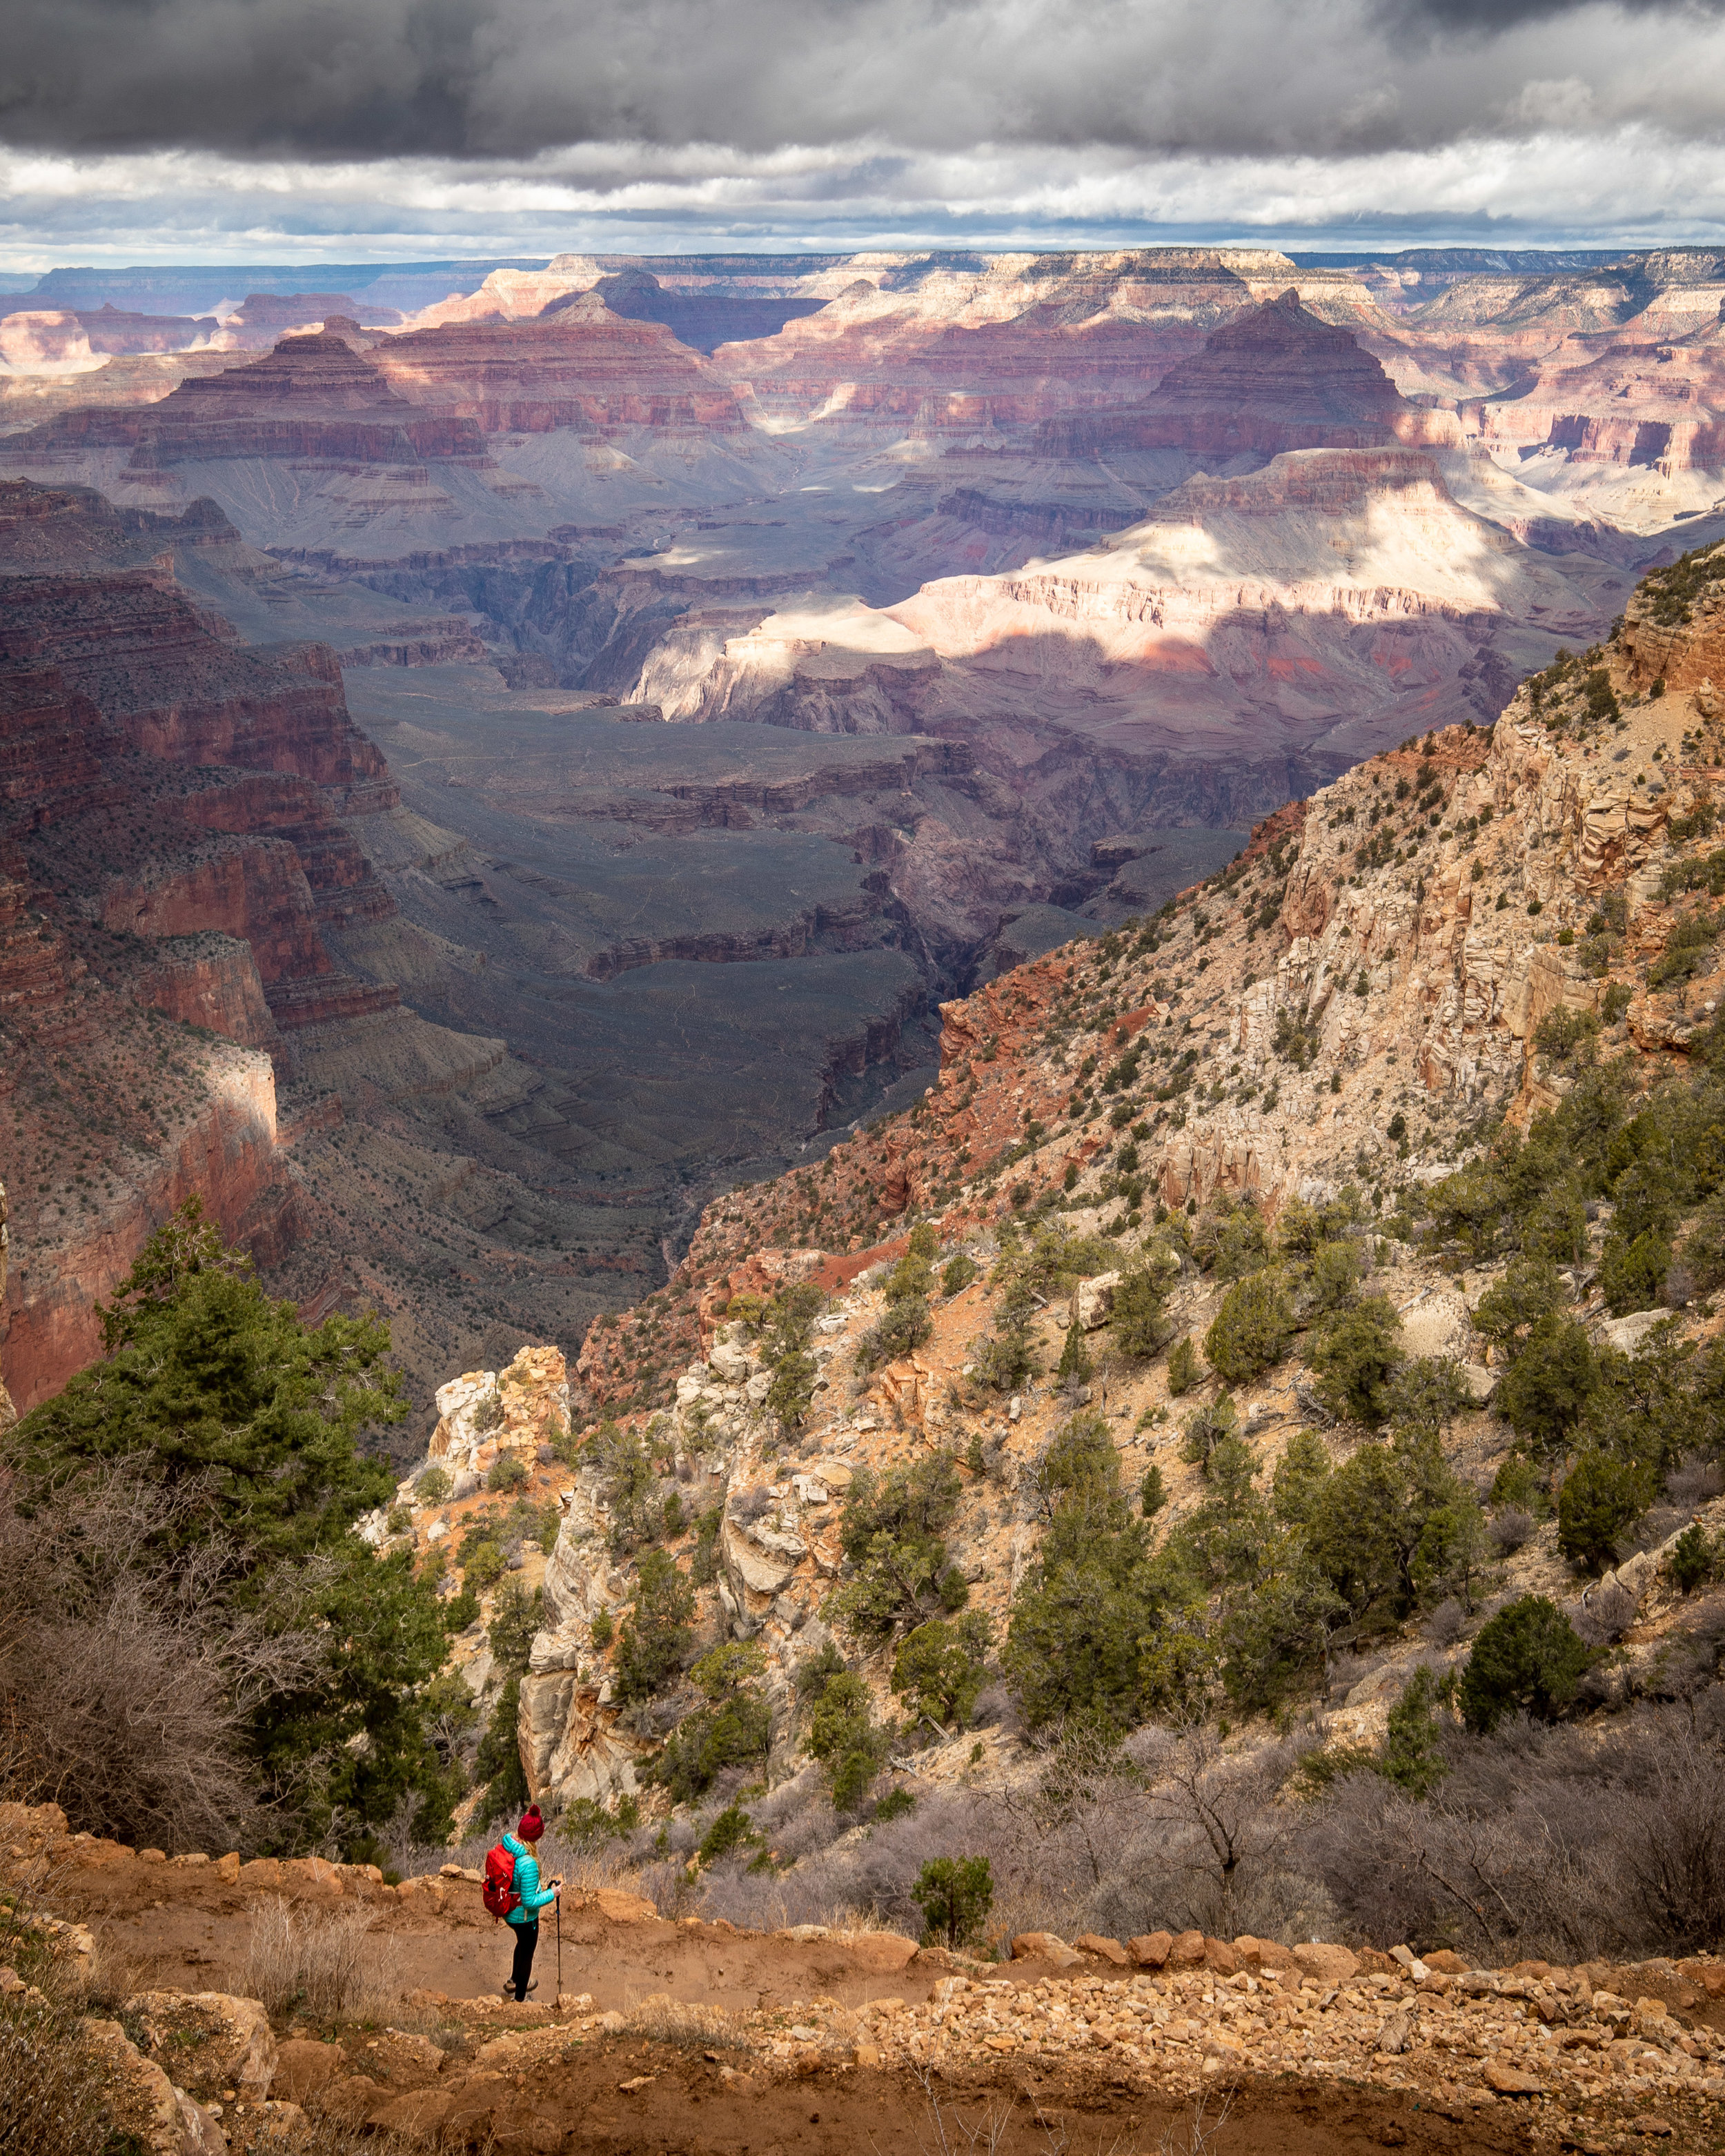 The start of the South Kaibab Trail